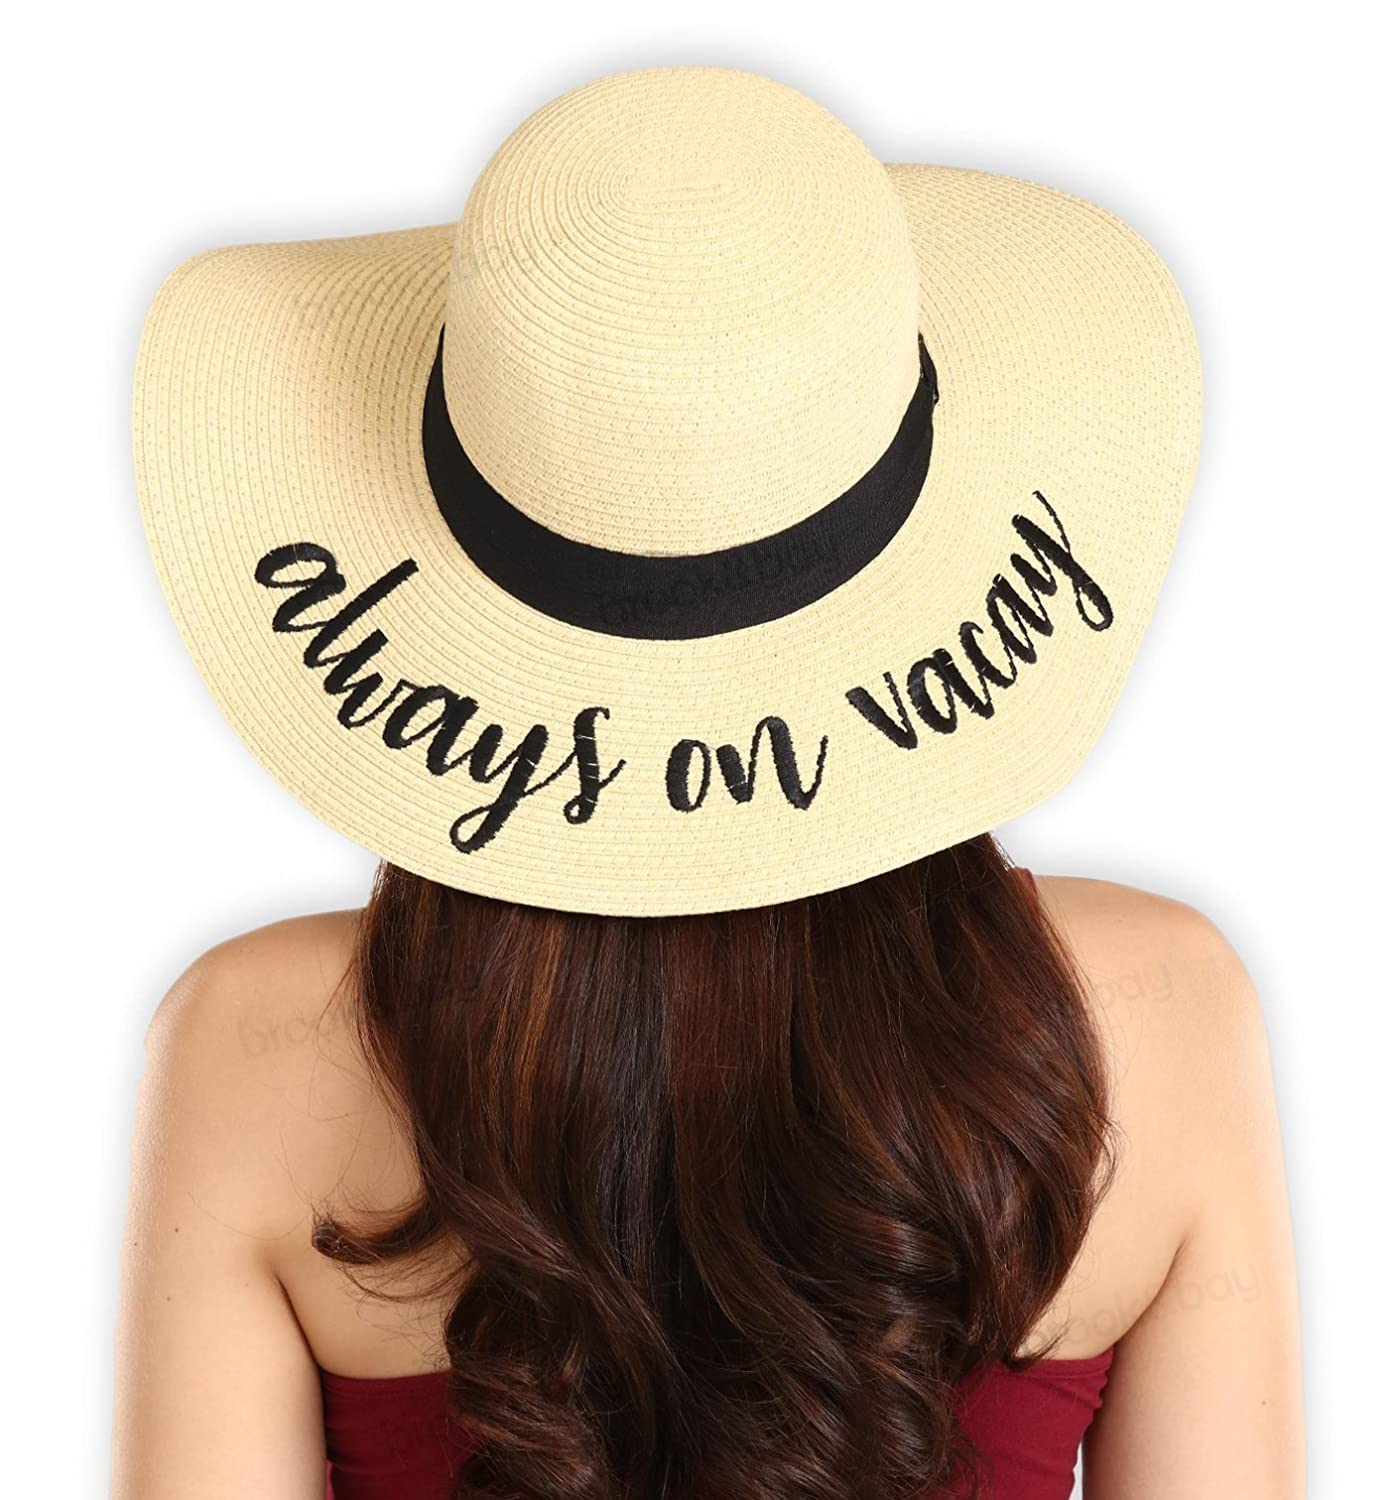 81a1940254b32 Women s Embroidered Floppy Beach Sun Hat - Wide Brim Summer Straw Hats -  Ideal for Travel   Vacation - Foldable   Packable